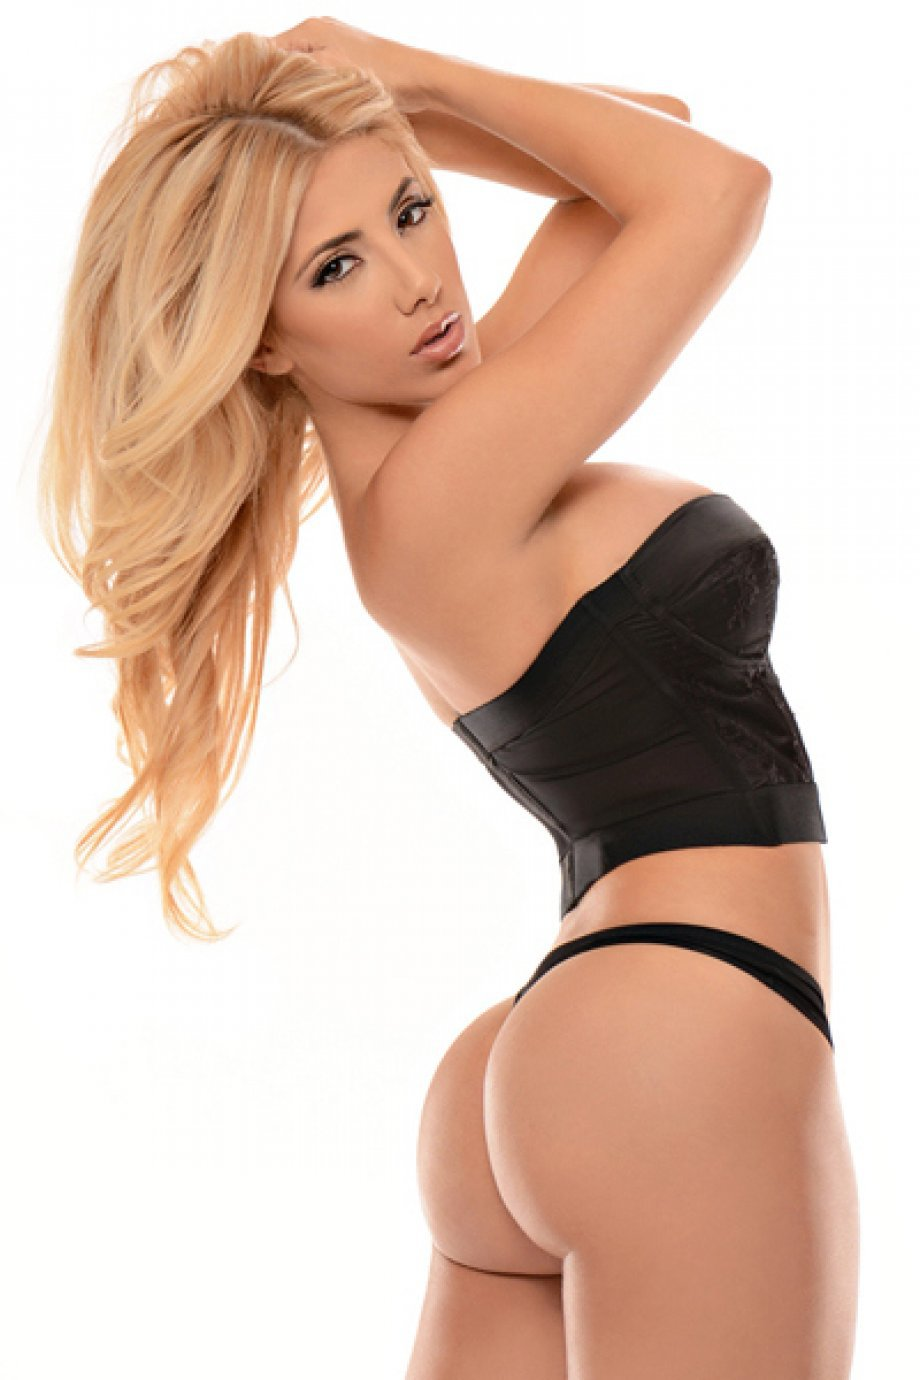 Valeria Orsini Iphone Sexy Wallpapers